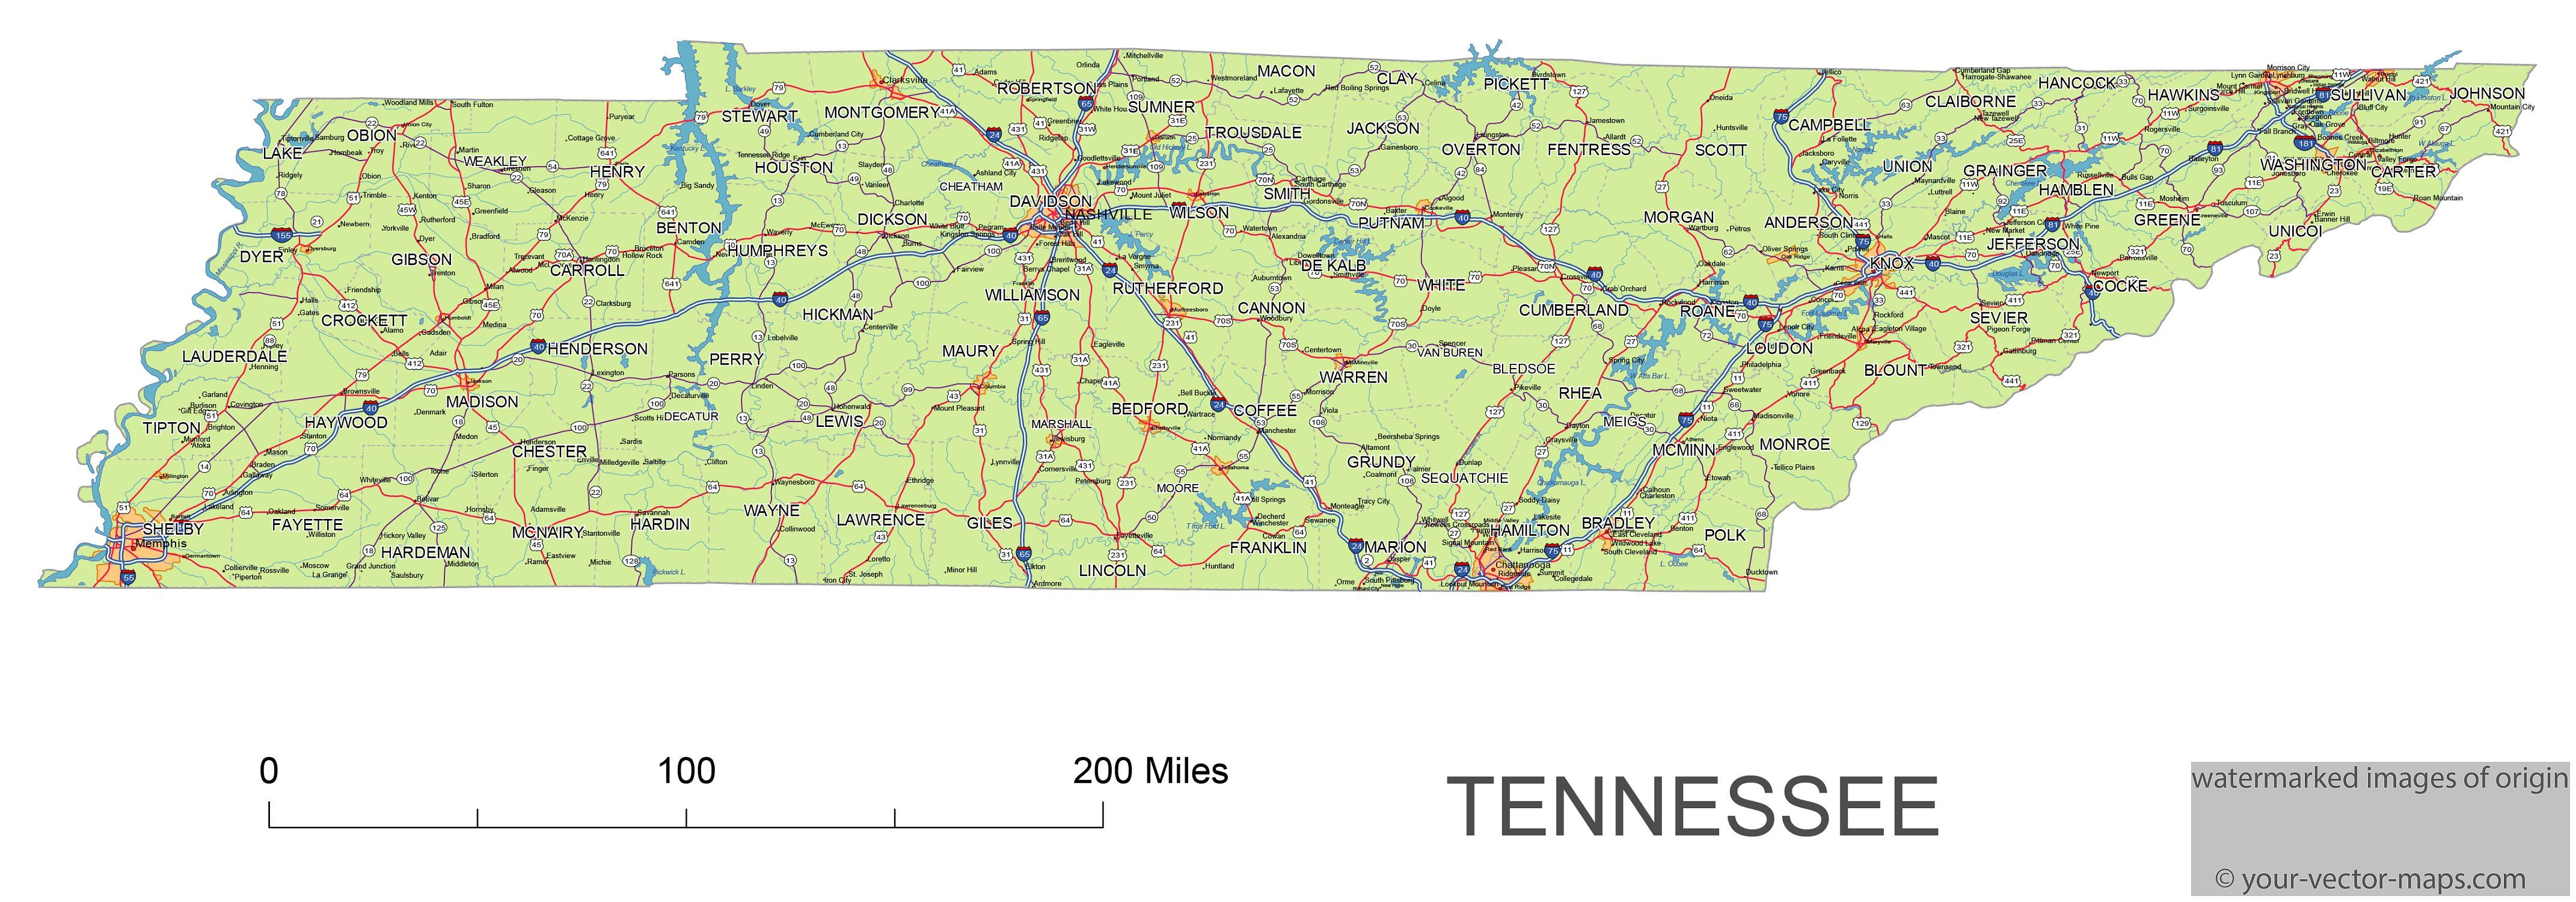 Tennessee state route network map. Tennessee highways map ...